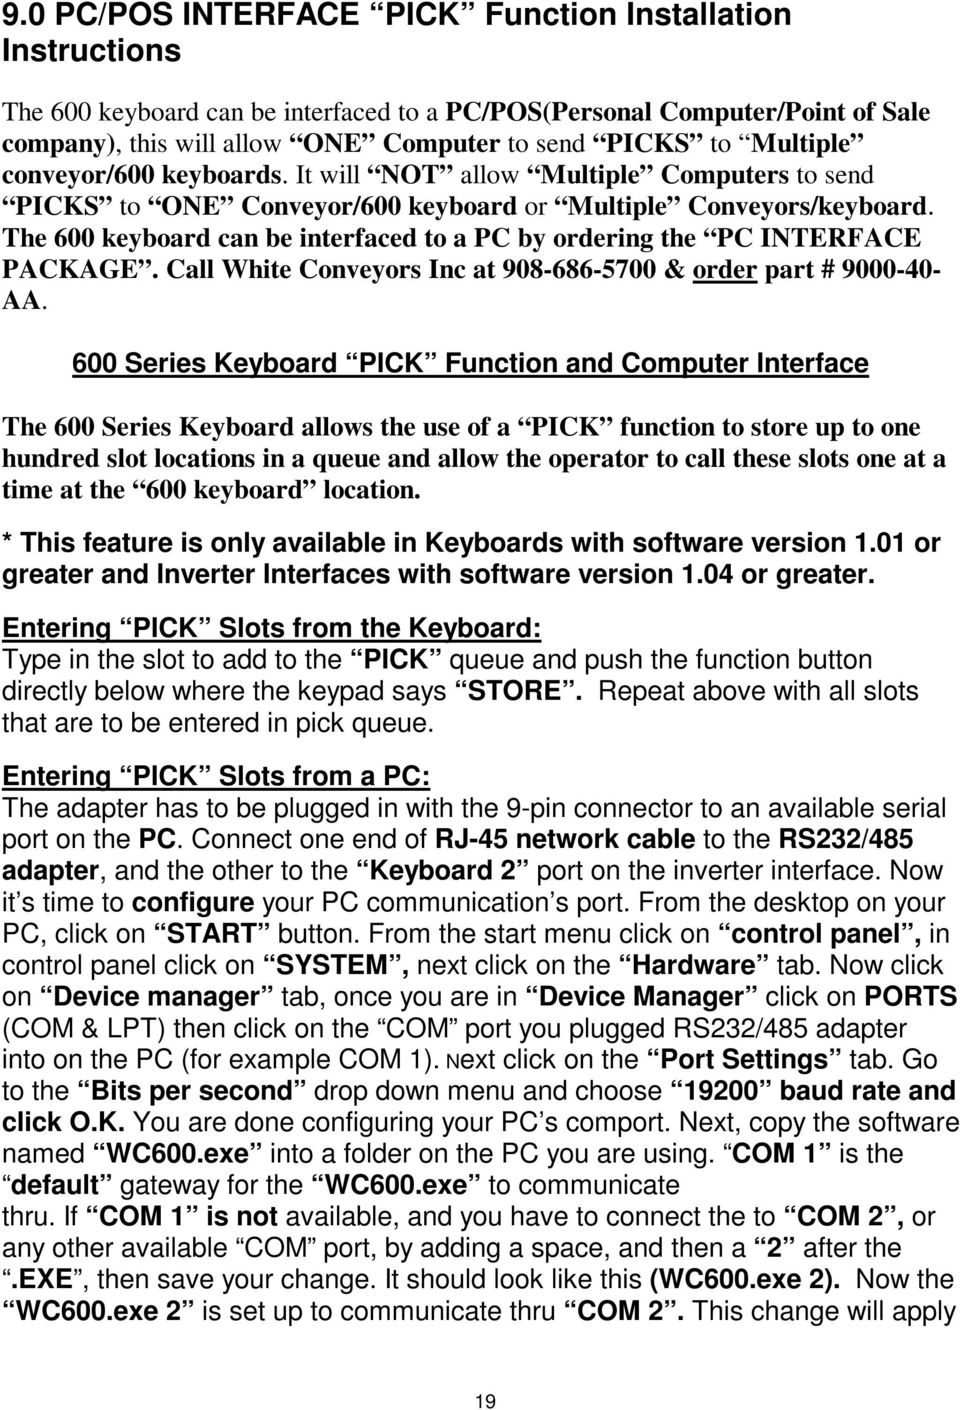 The 600 keyboard can be interfaced to a PC by ordering the PC INTERFACE PACKAGE. Call White Conveyors Inc at 908-686-5700 & order part # 9000-40- AA.